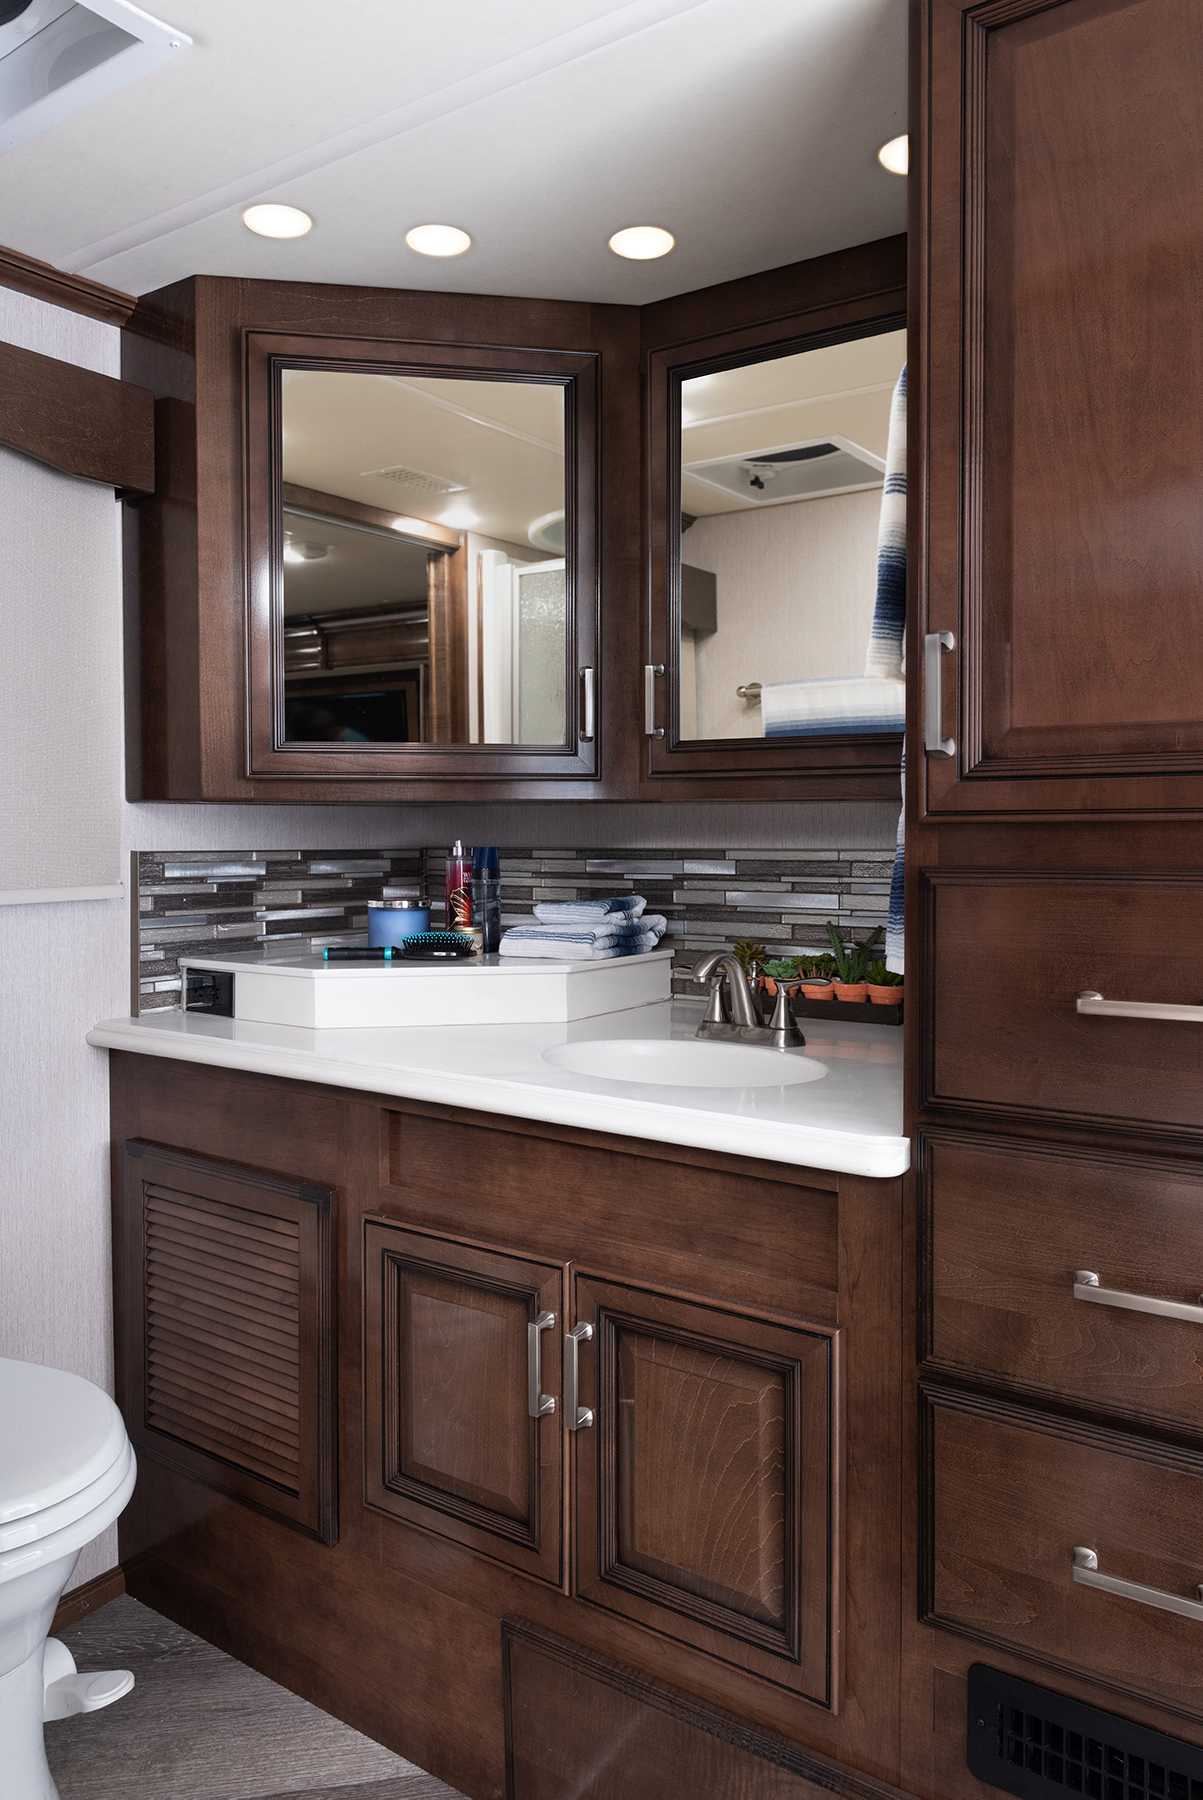 Pace LXE 38K Vapor Decor with Oxford Cabinetry